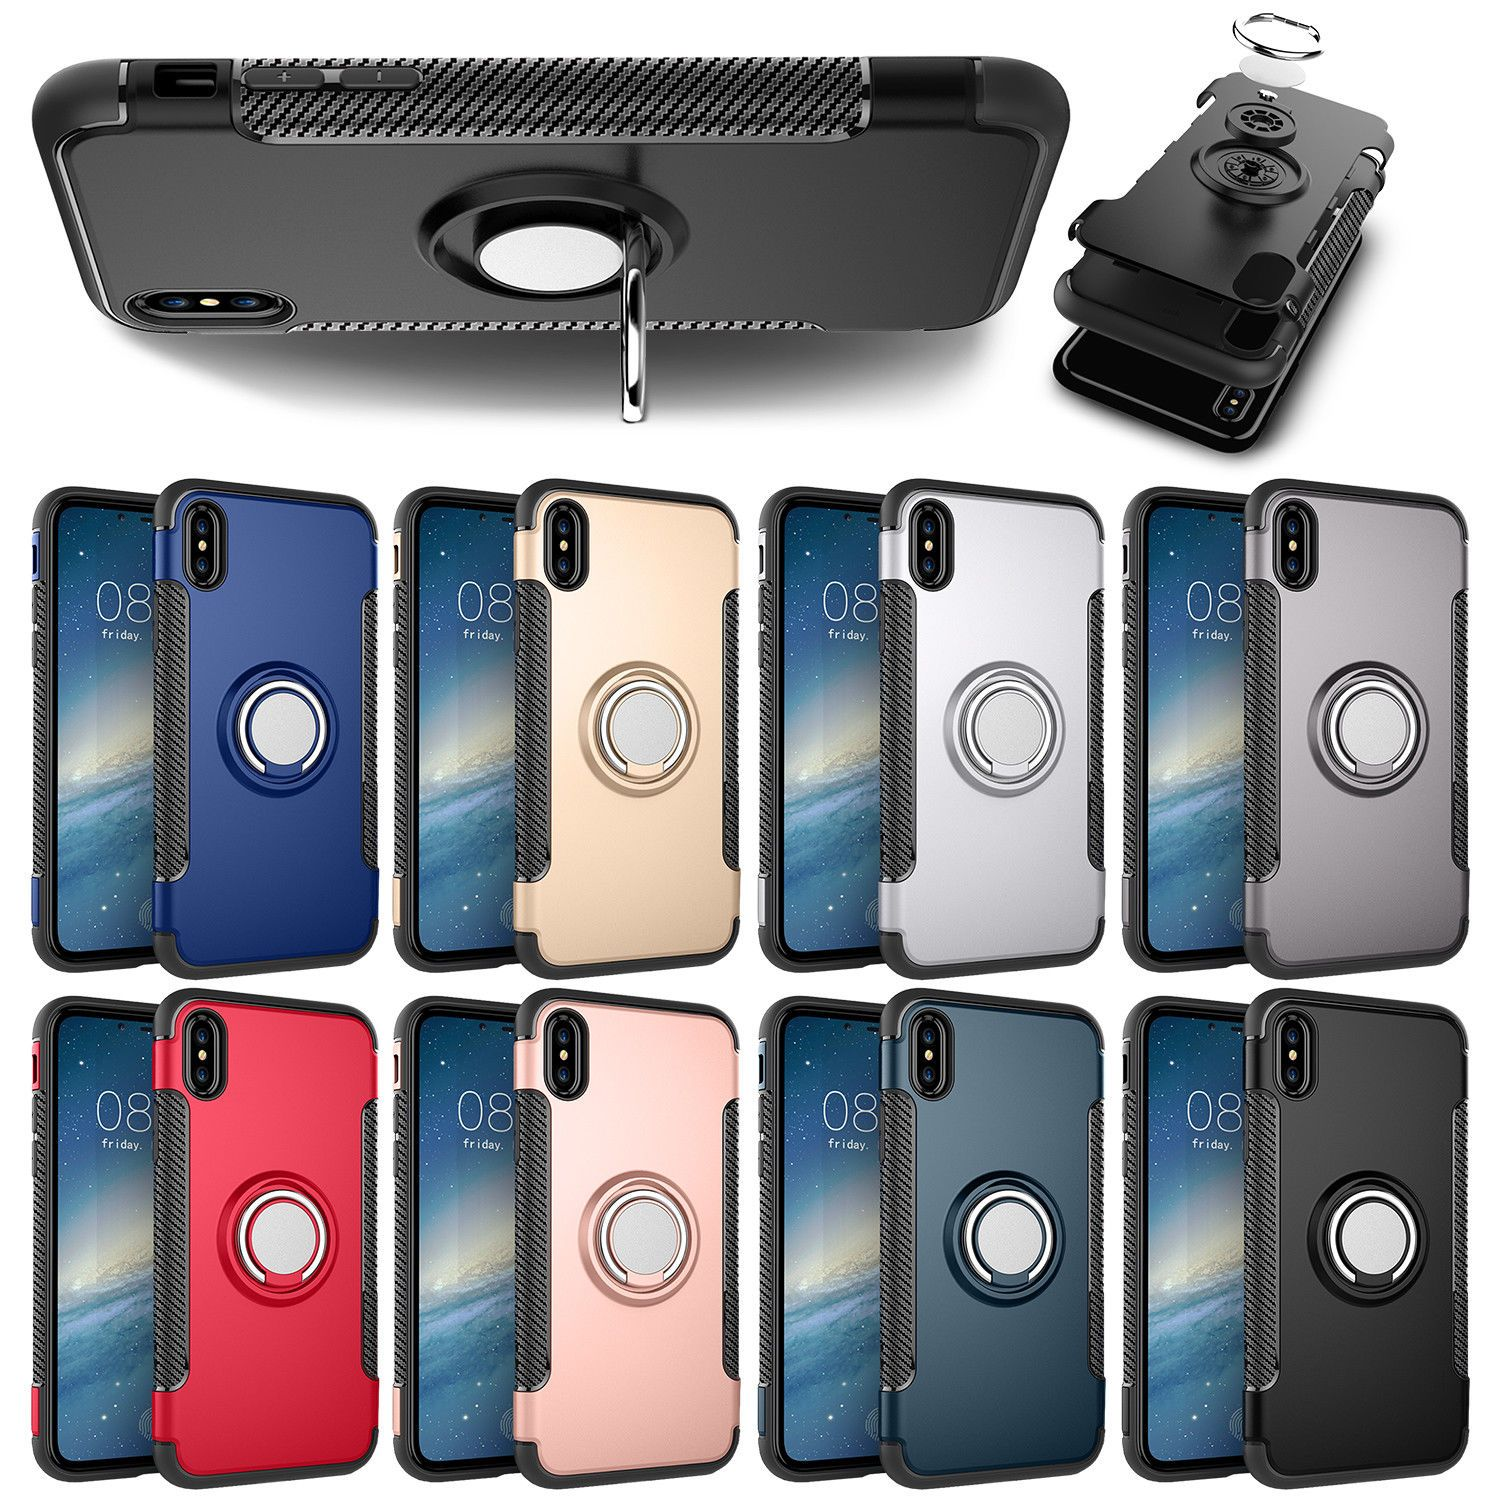 For Iphone 7 8 Plus X 6s Hybrid Magnetic Soft Tpu Ring Stand Case 2in1 Brushed Armor Lg K8 Hardcase Silicone Cover